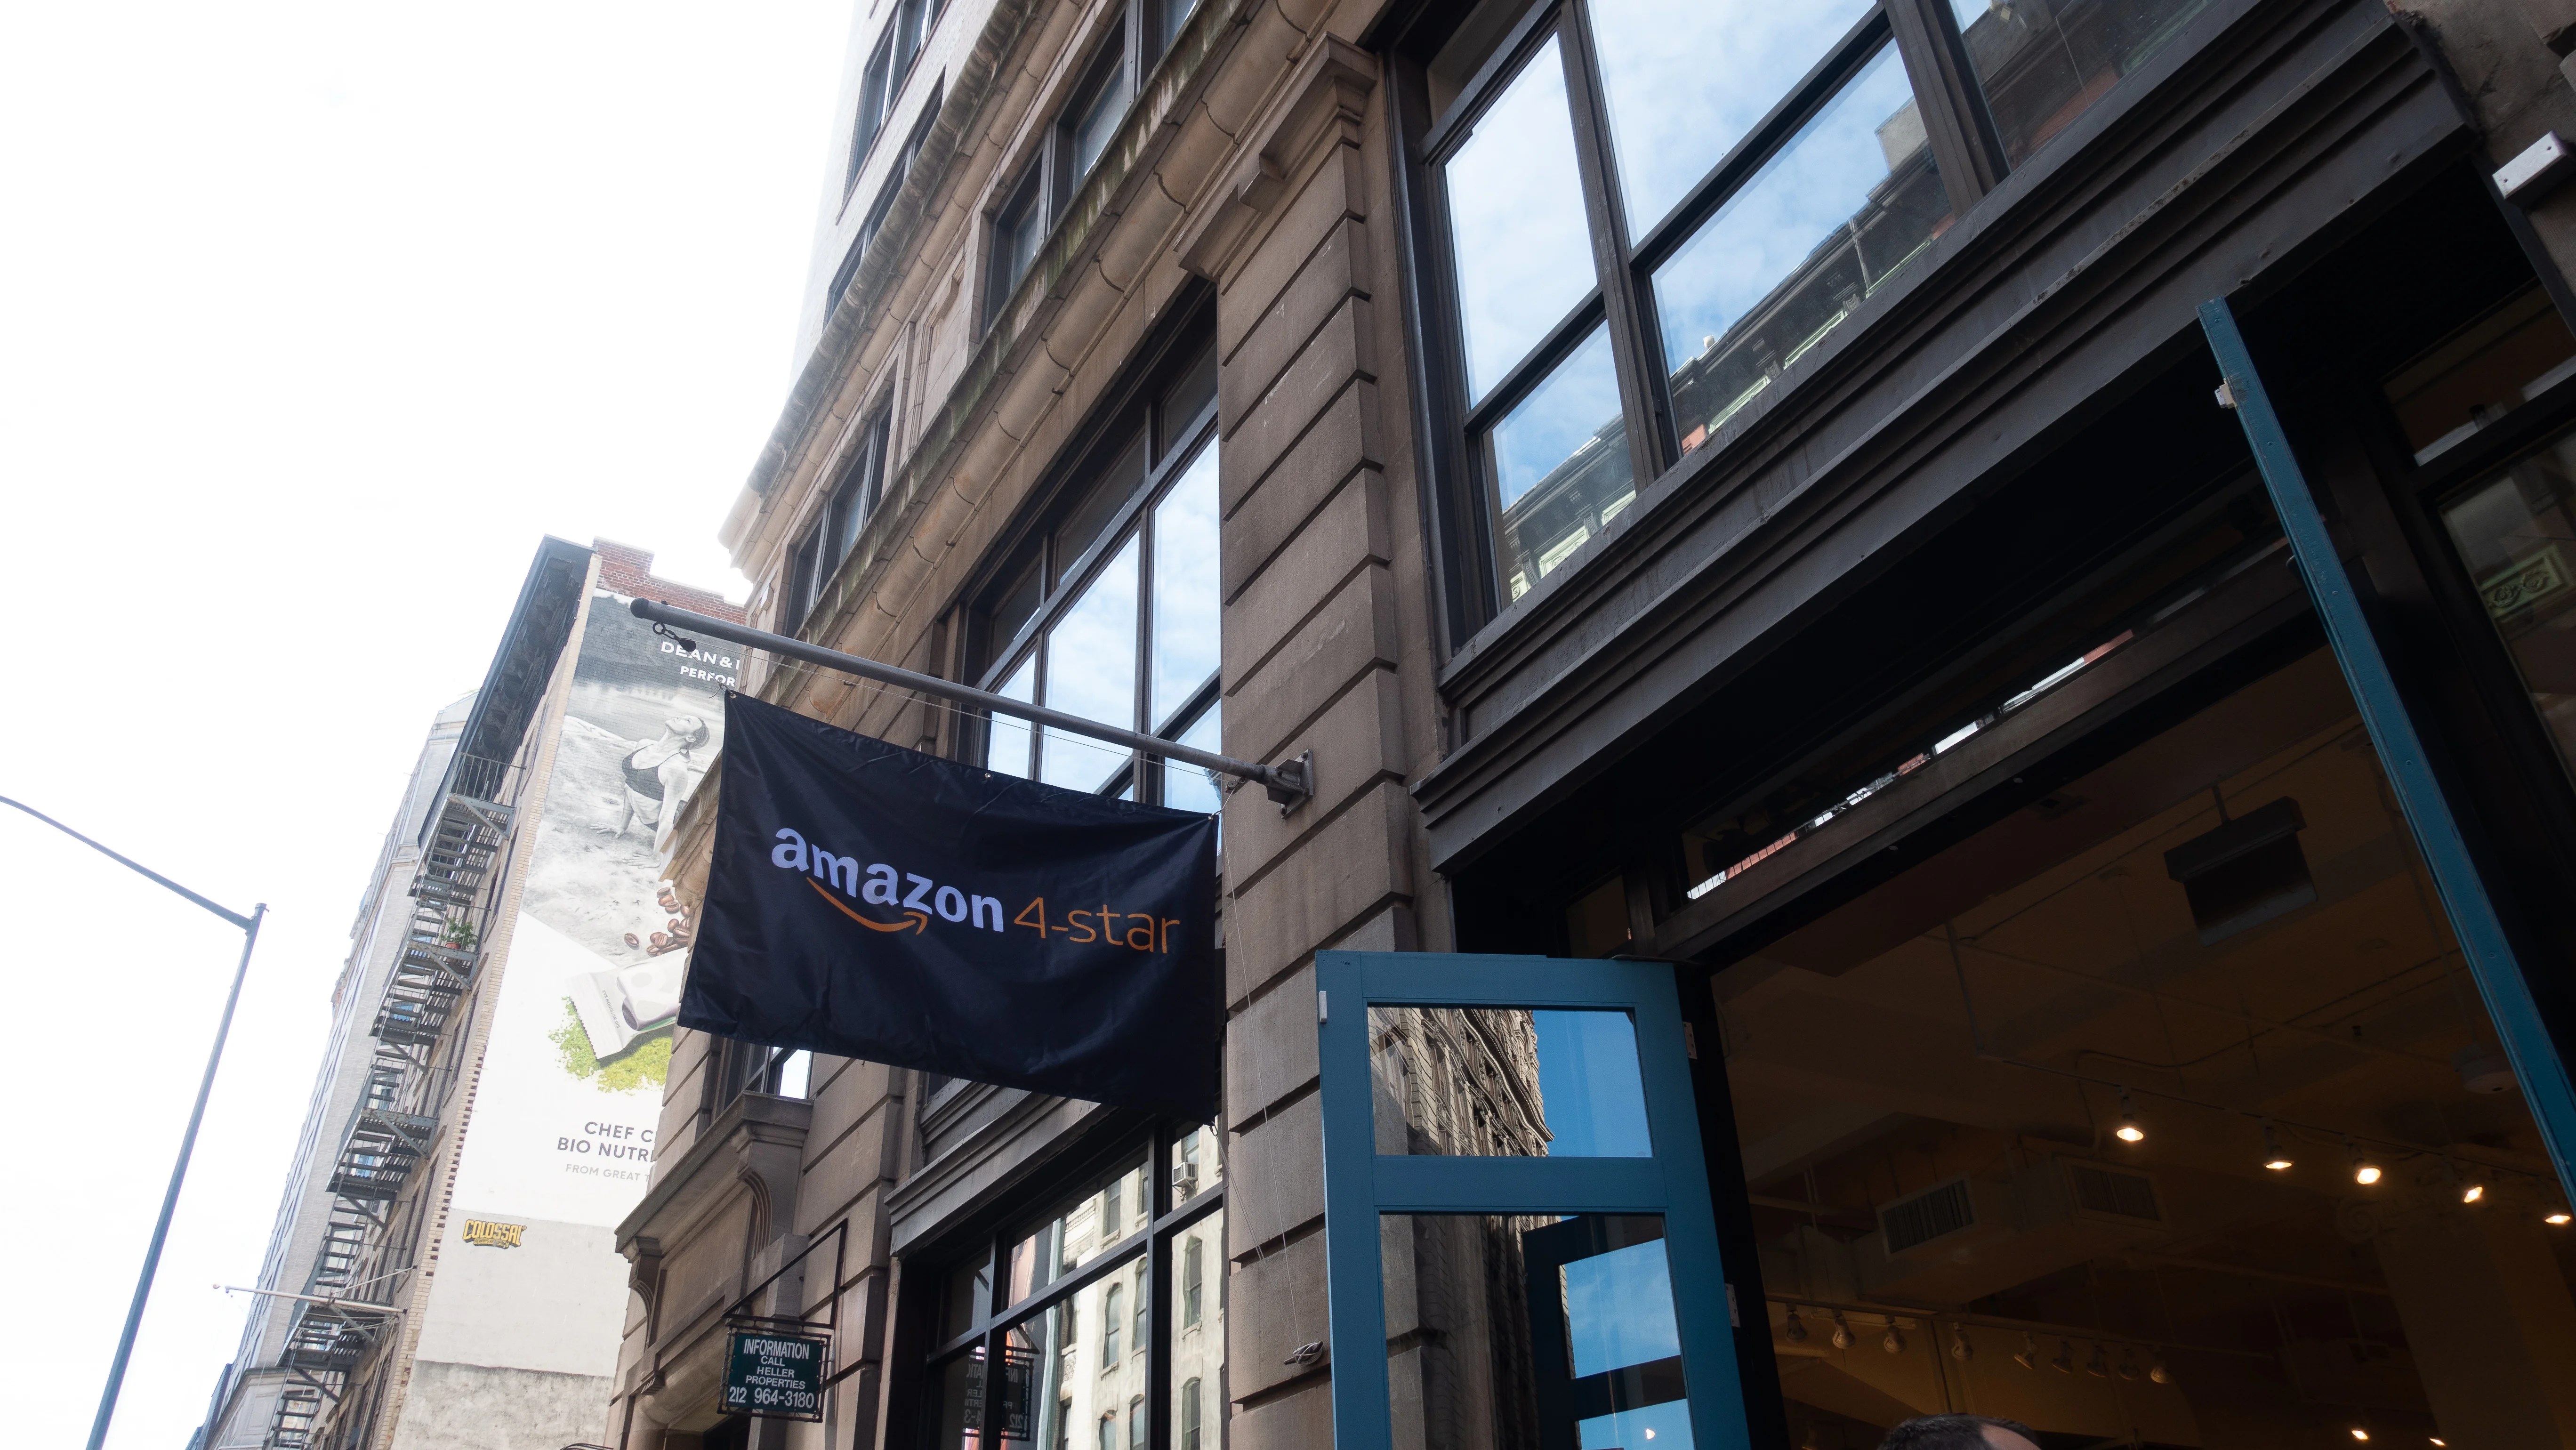 We Went Inside Amazon's First Brick-and-Mortar Store in NYC